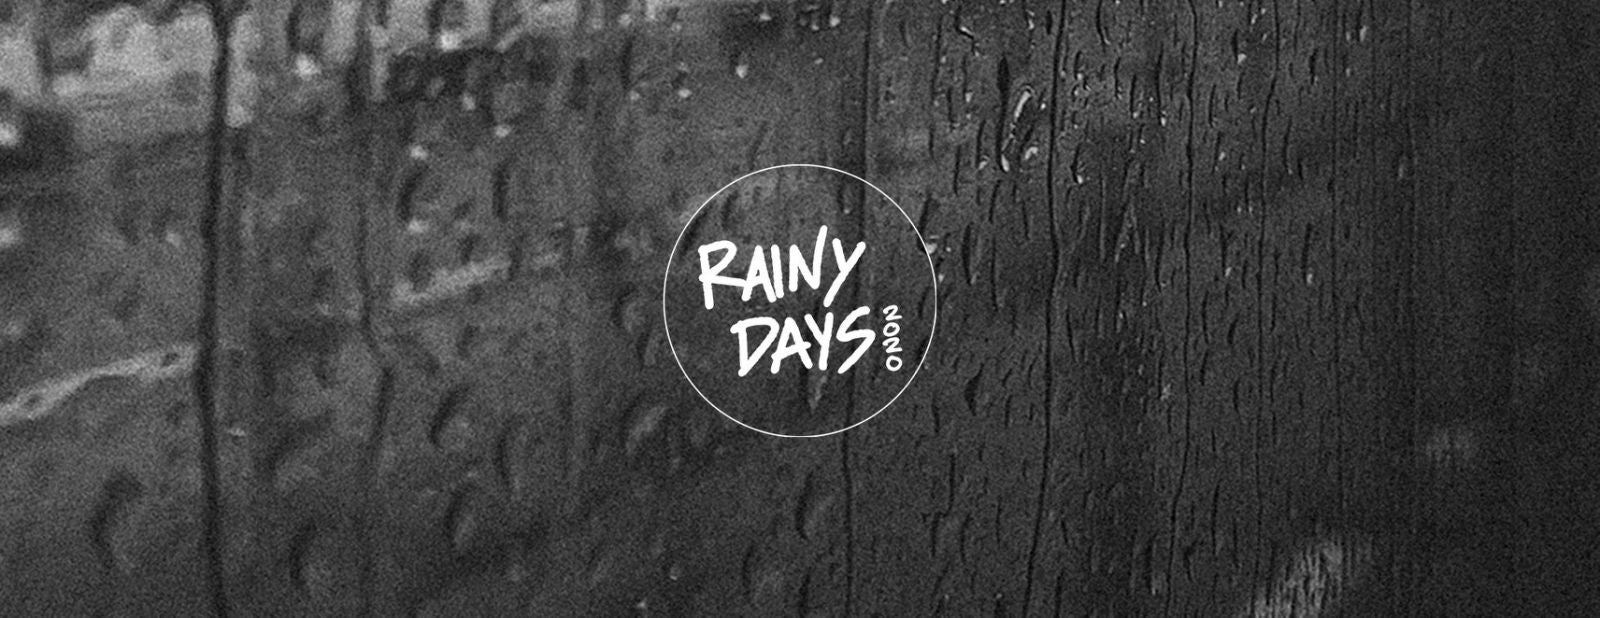 rainy days 2020